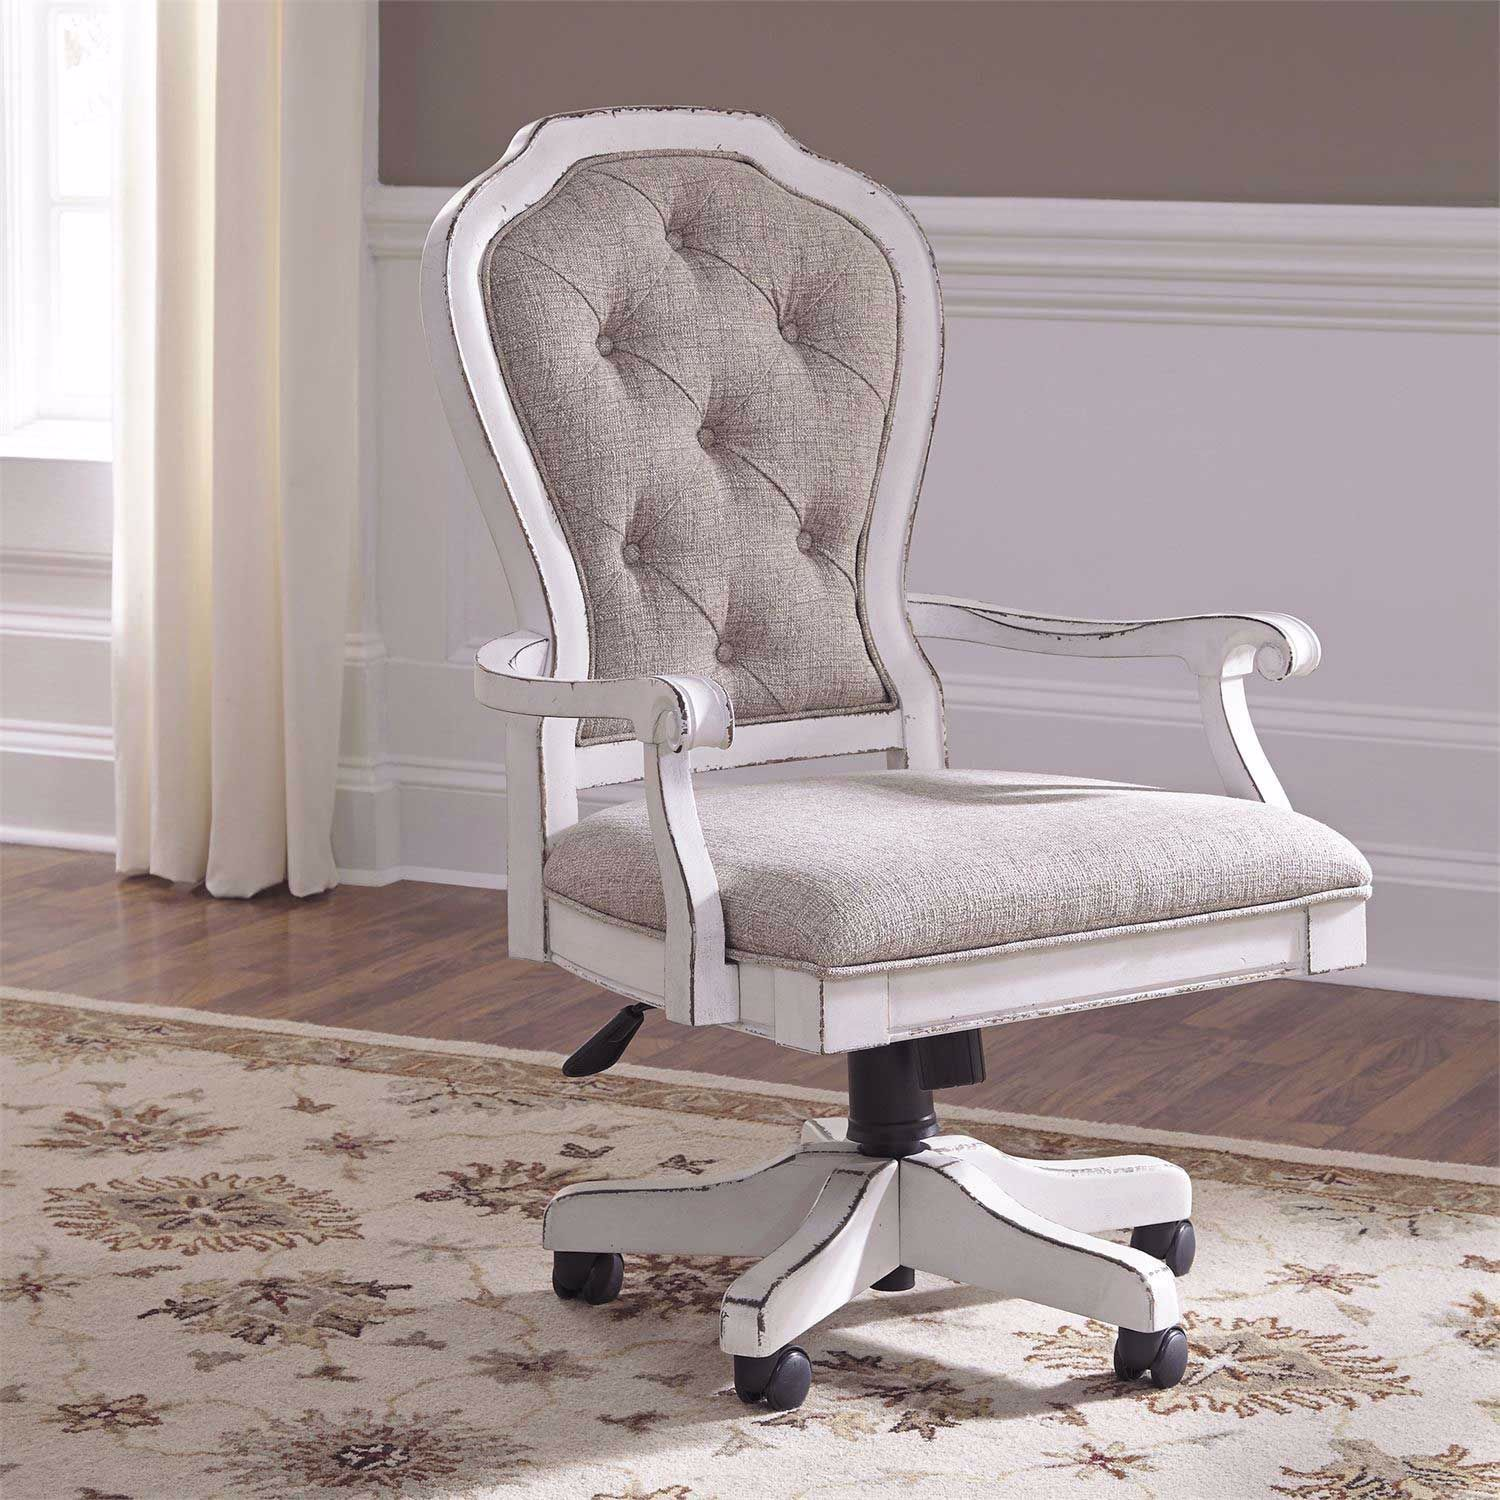 Picture of Magnolia Junior Executive Desk Chair